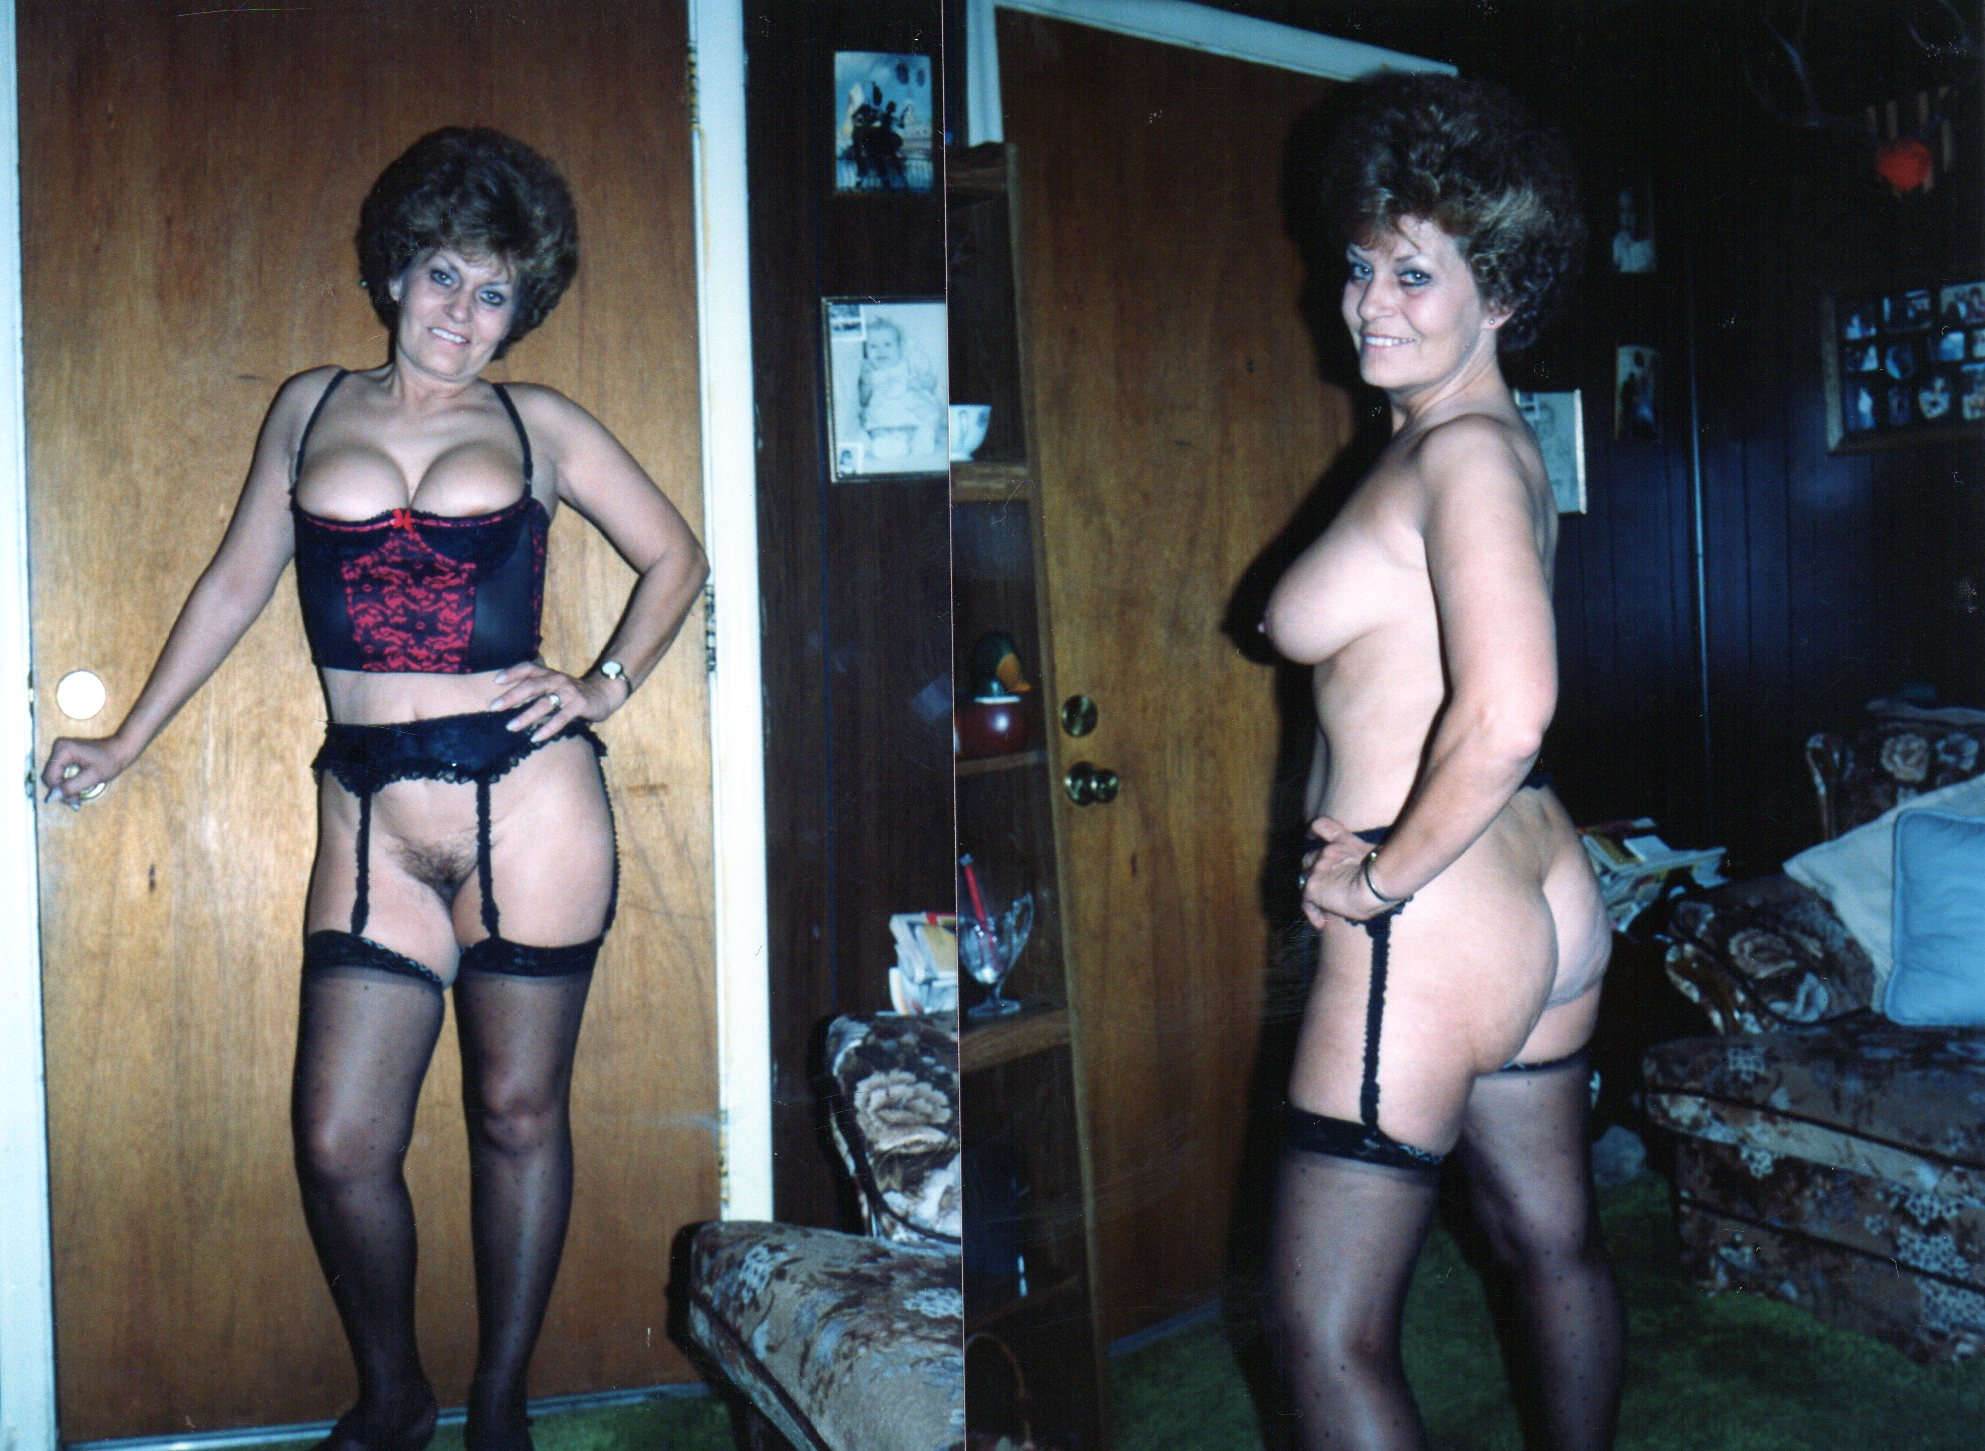 Polaroid dressed undressed amateurs